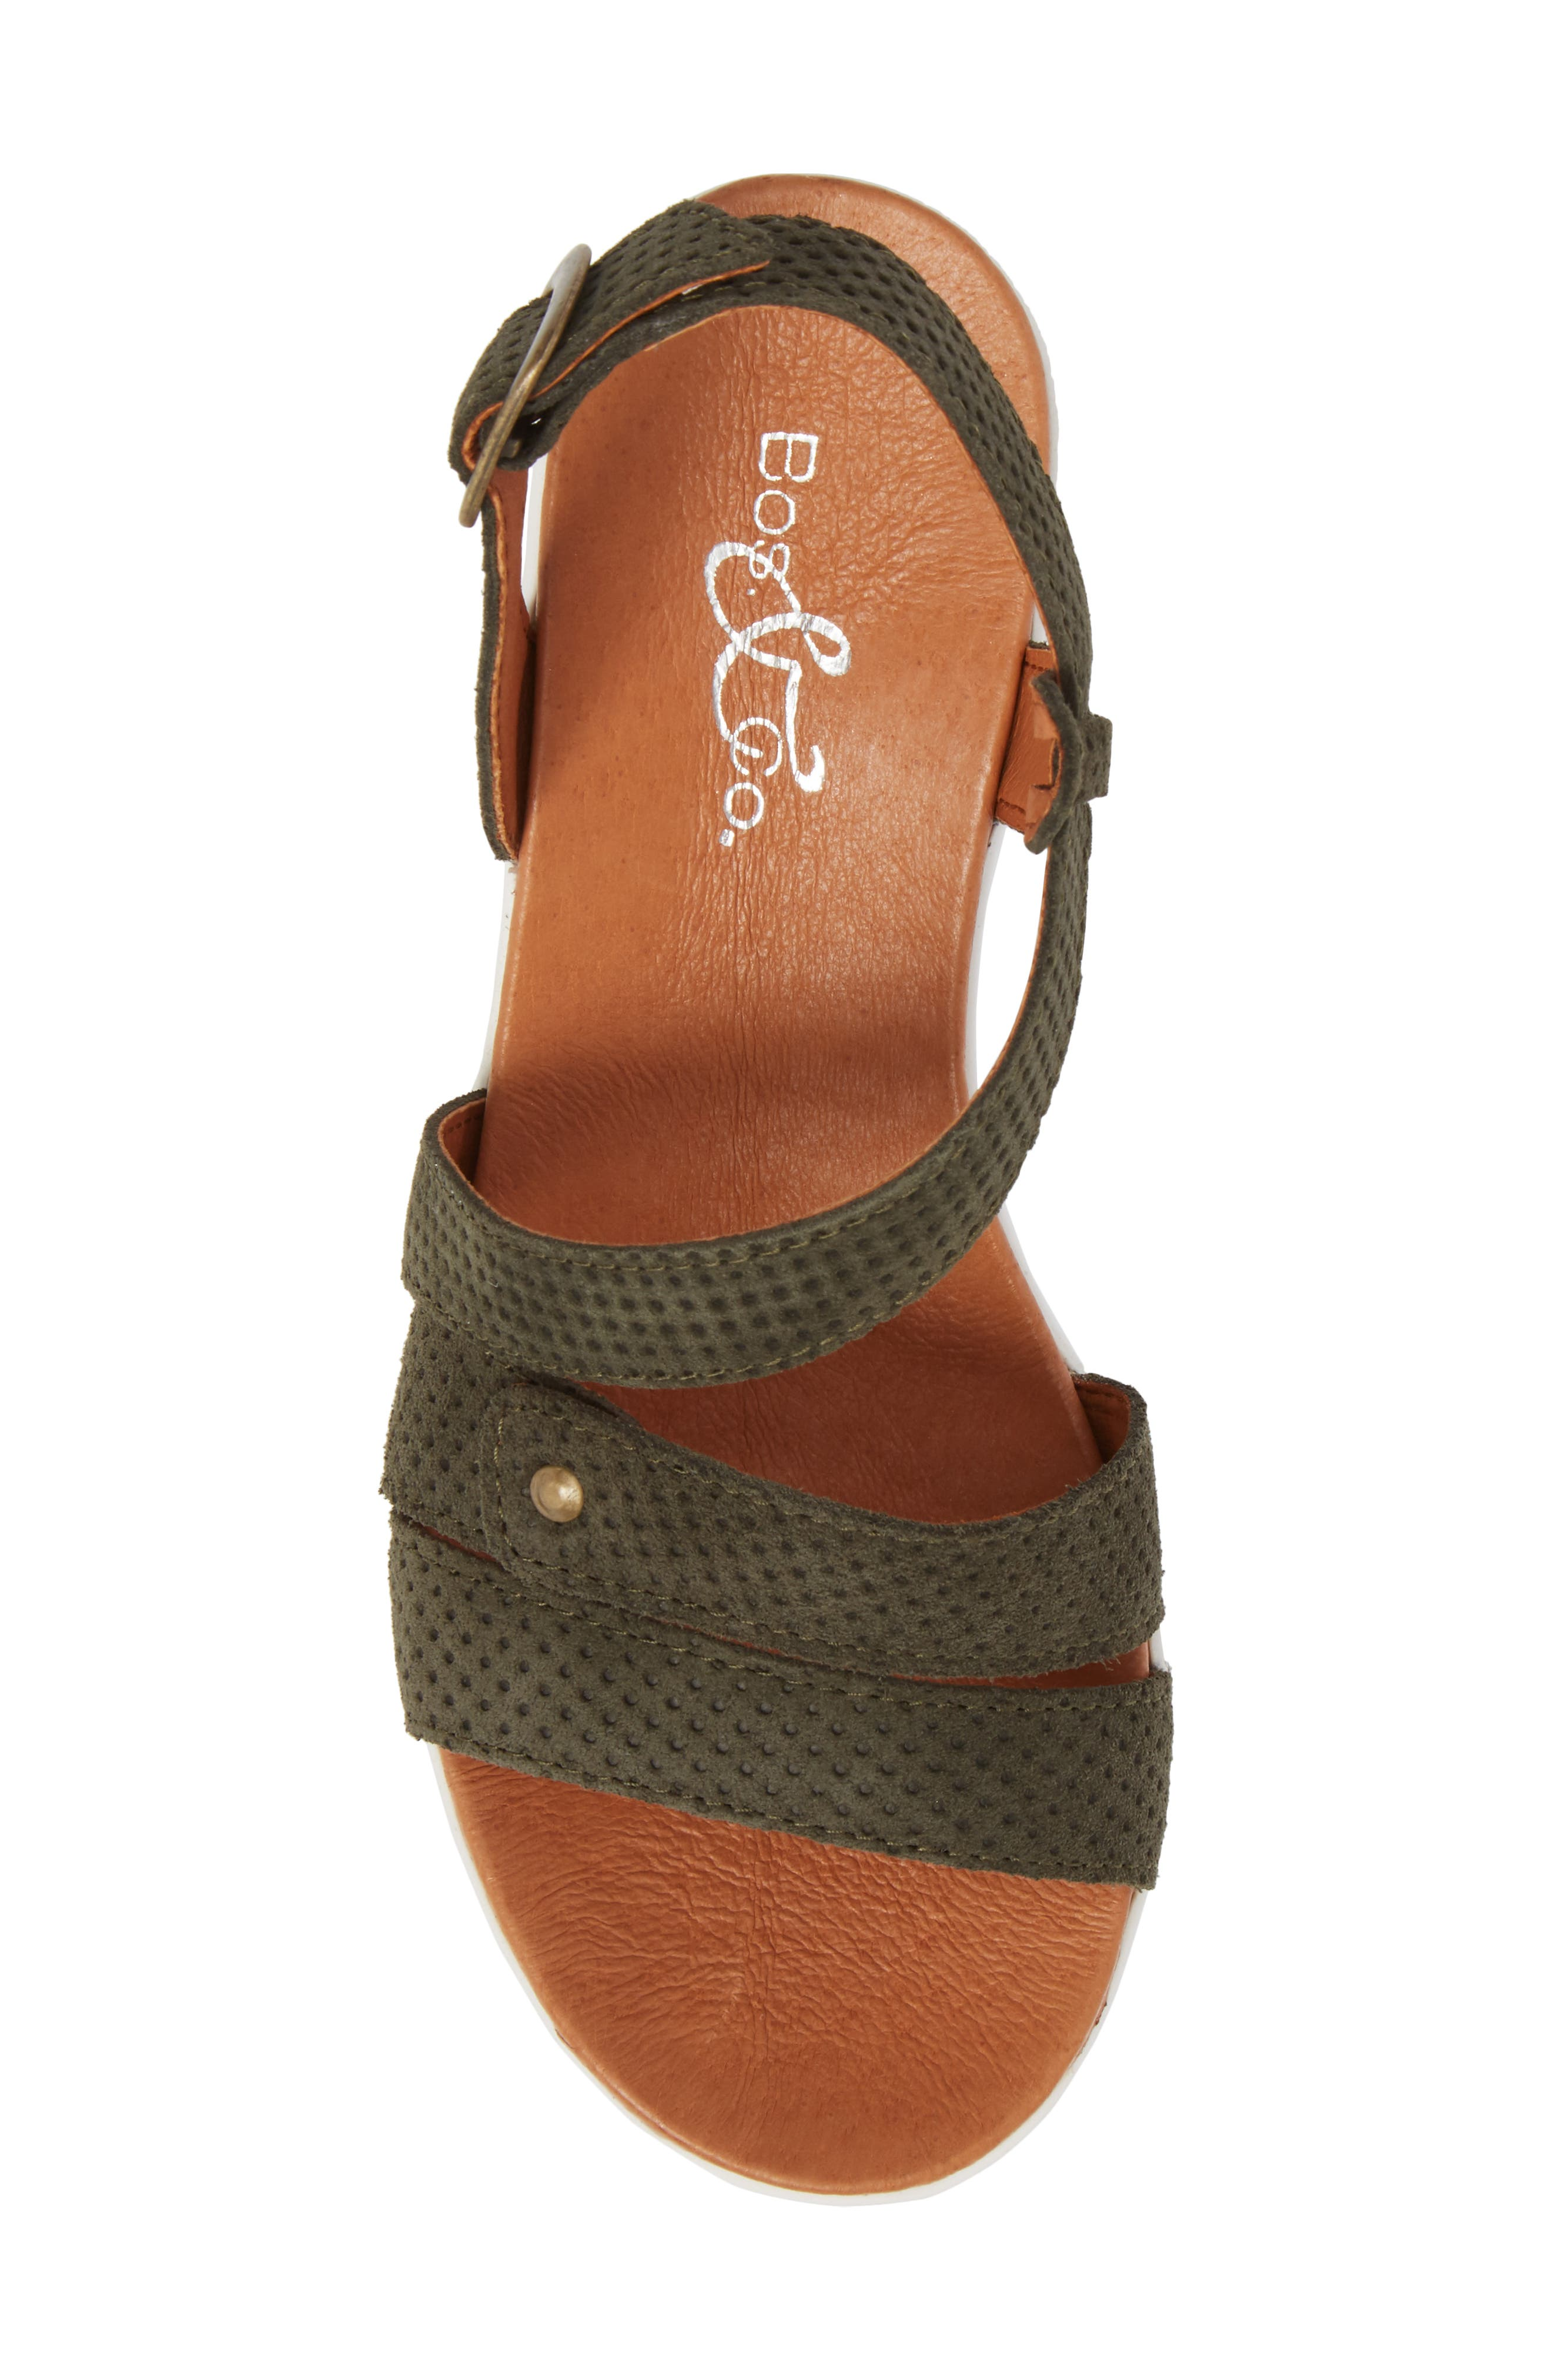 Sierra Platform Wedge Sandal,                             Alternate thumbnail 5, color,                             MINT LEATHER